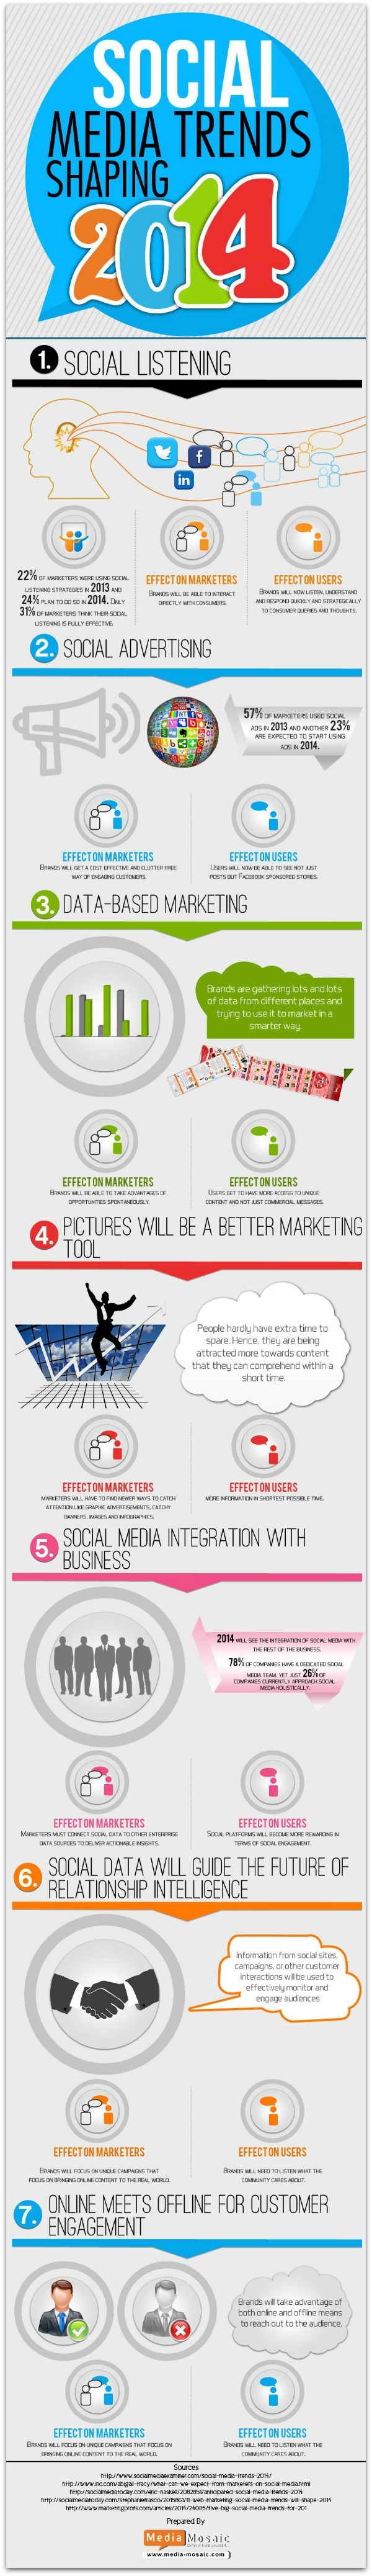 Social_Media_Trends_for_2014_Infographic